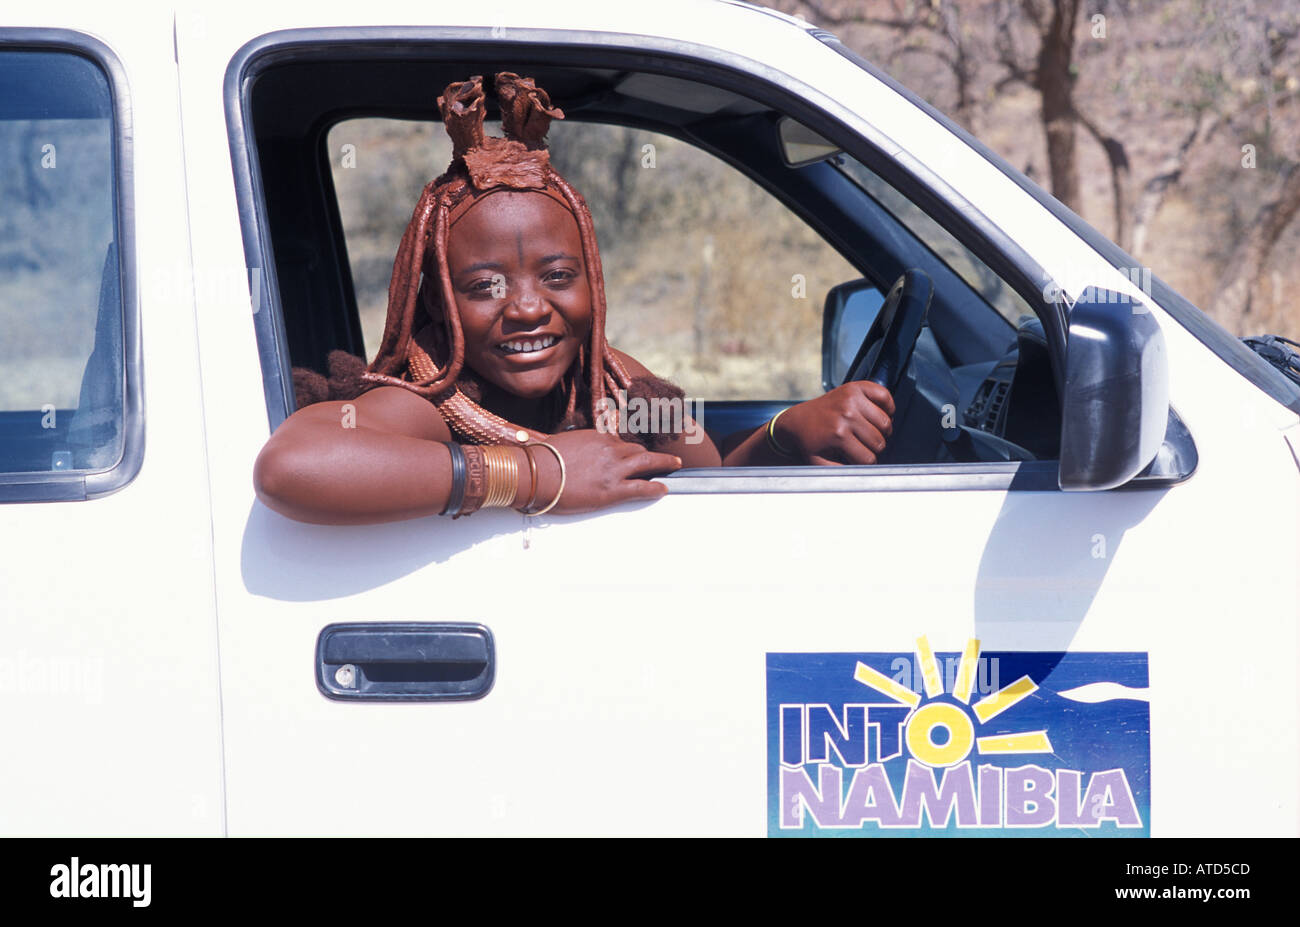 Himba woman Distinctive hair decoration and adornments At the wheel of a 4x4 Kaokoveld S of Opuwo Namibia - Stock Image